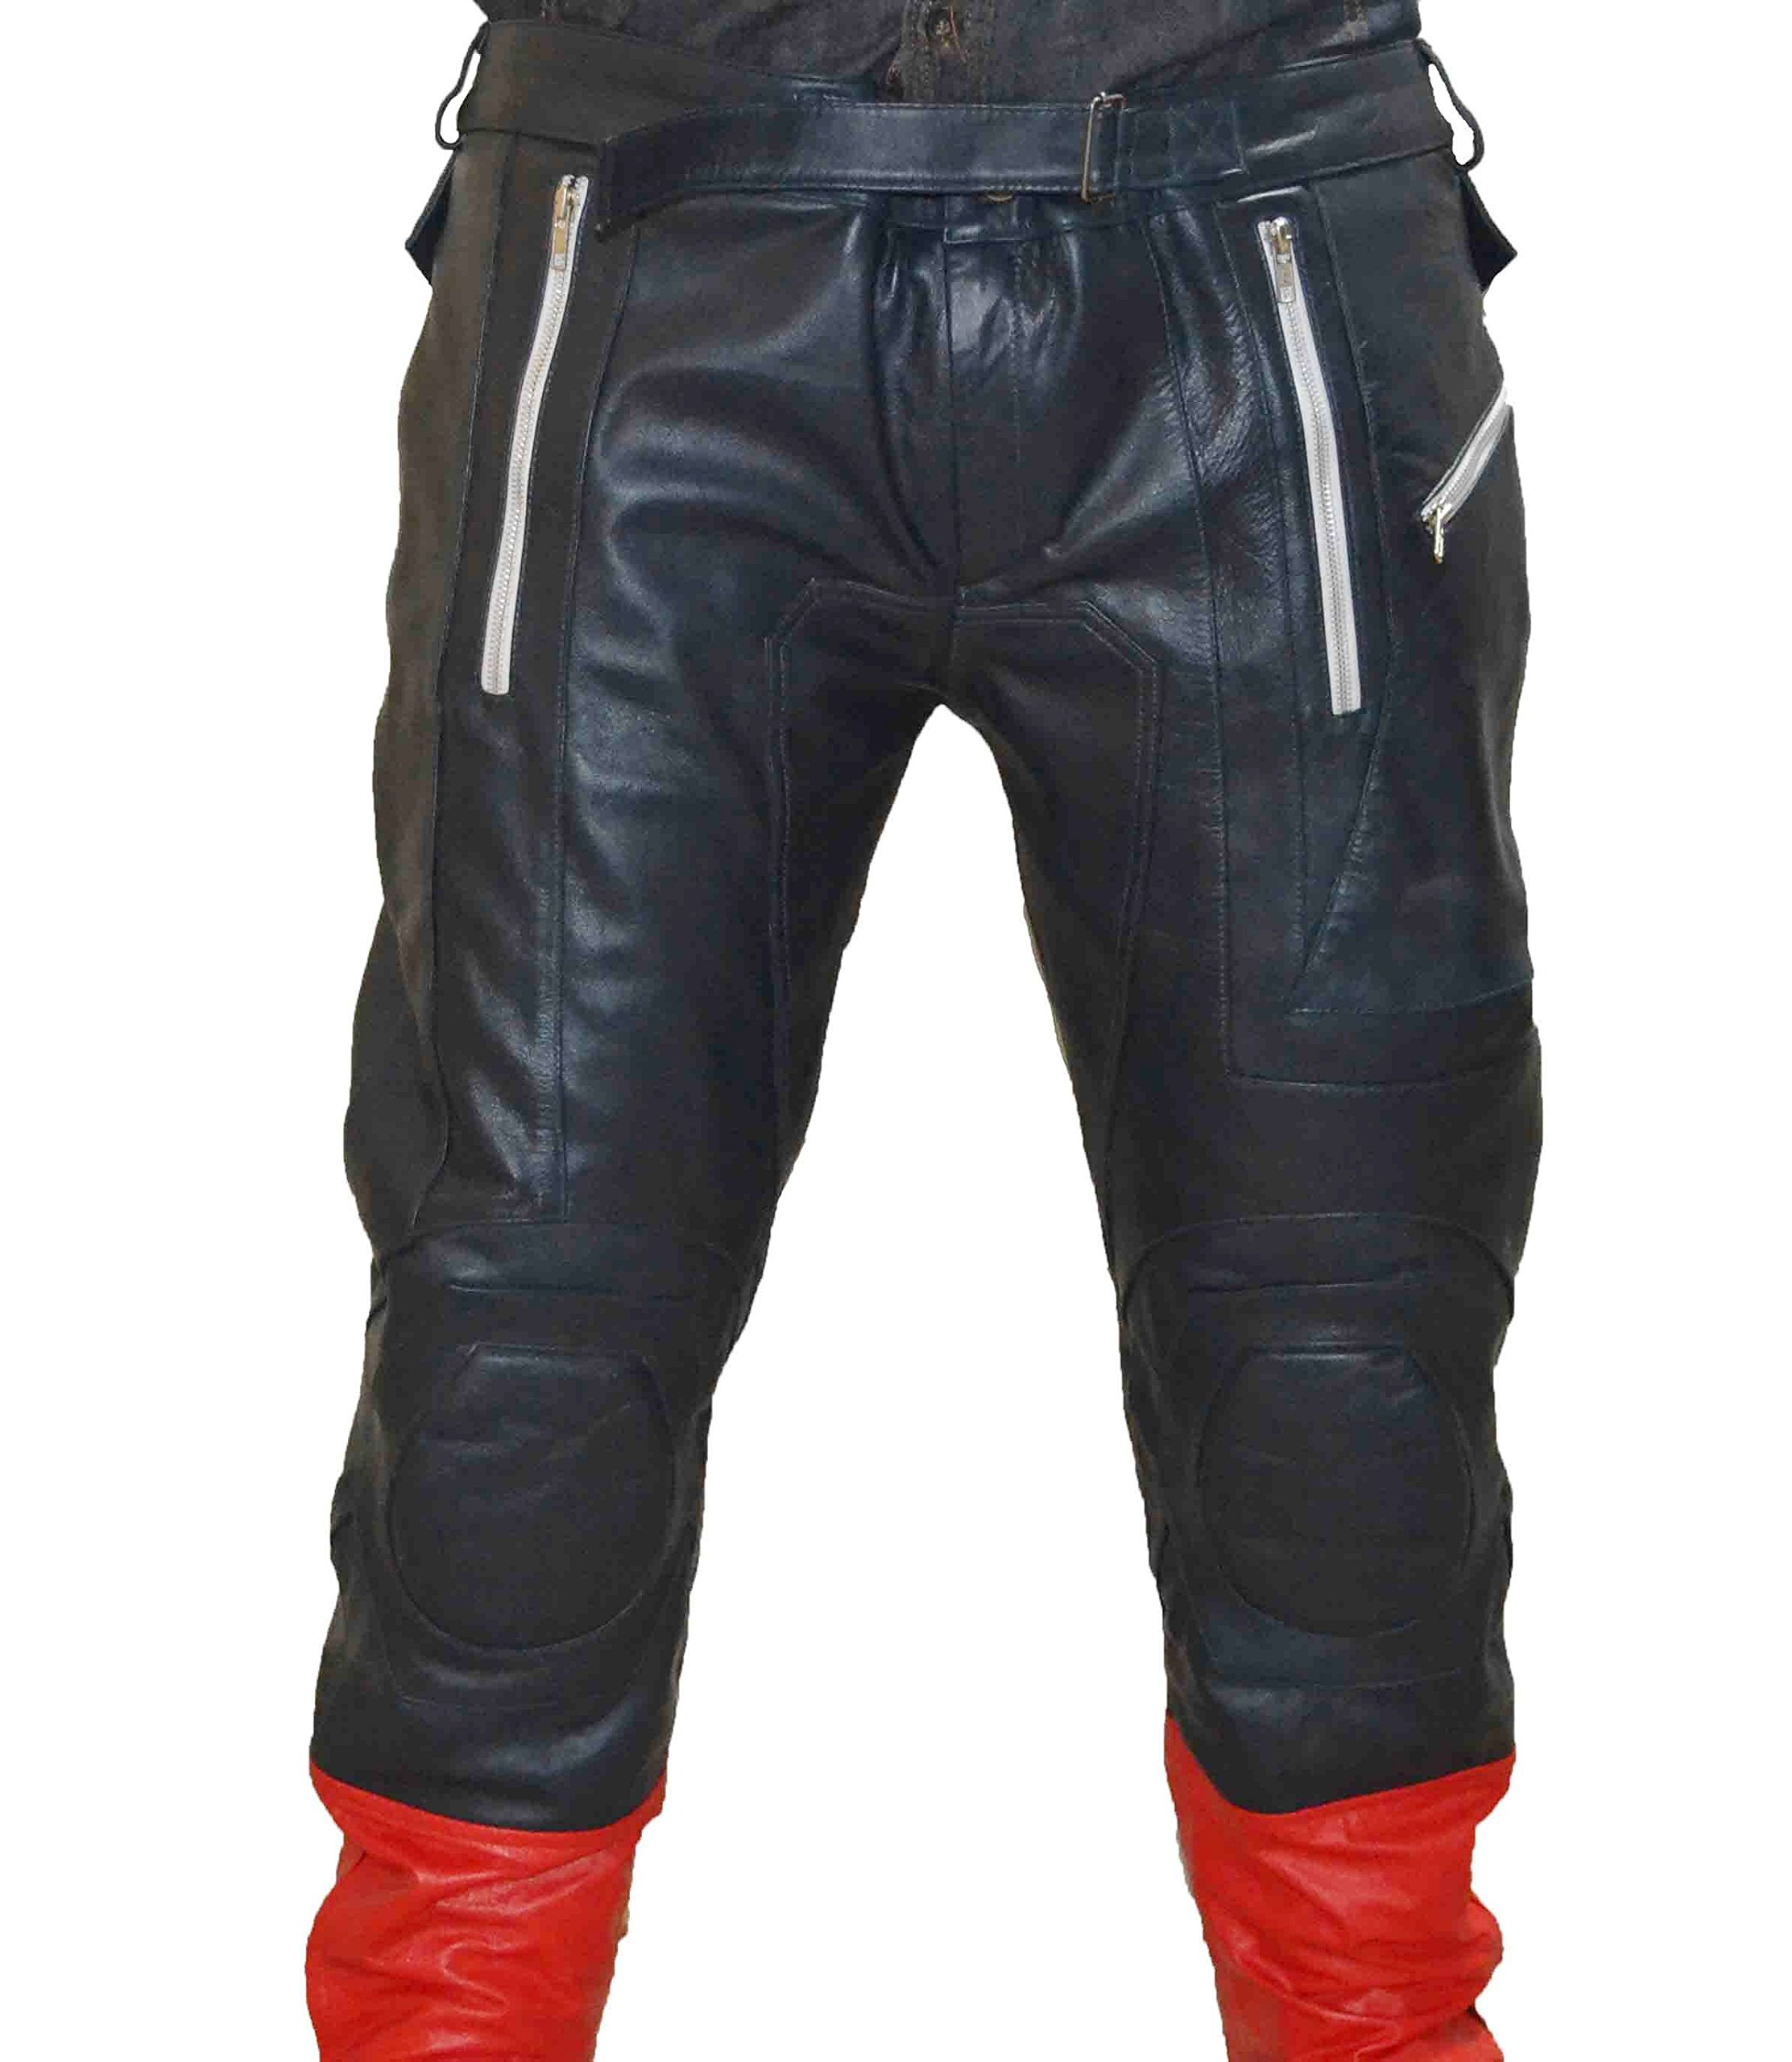 MSHC Captain America Avengers Cow Hide Leather Pants (3XL) CA1 PS Blue Red